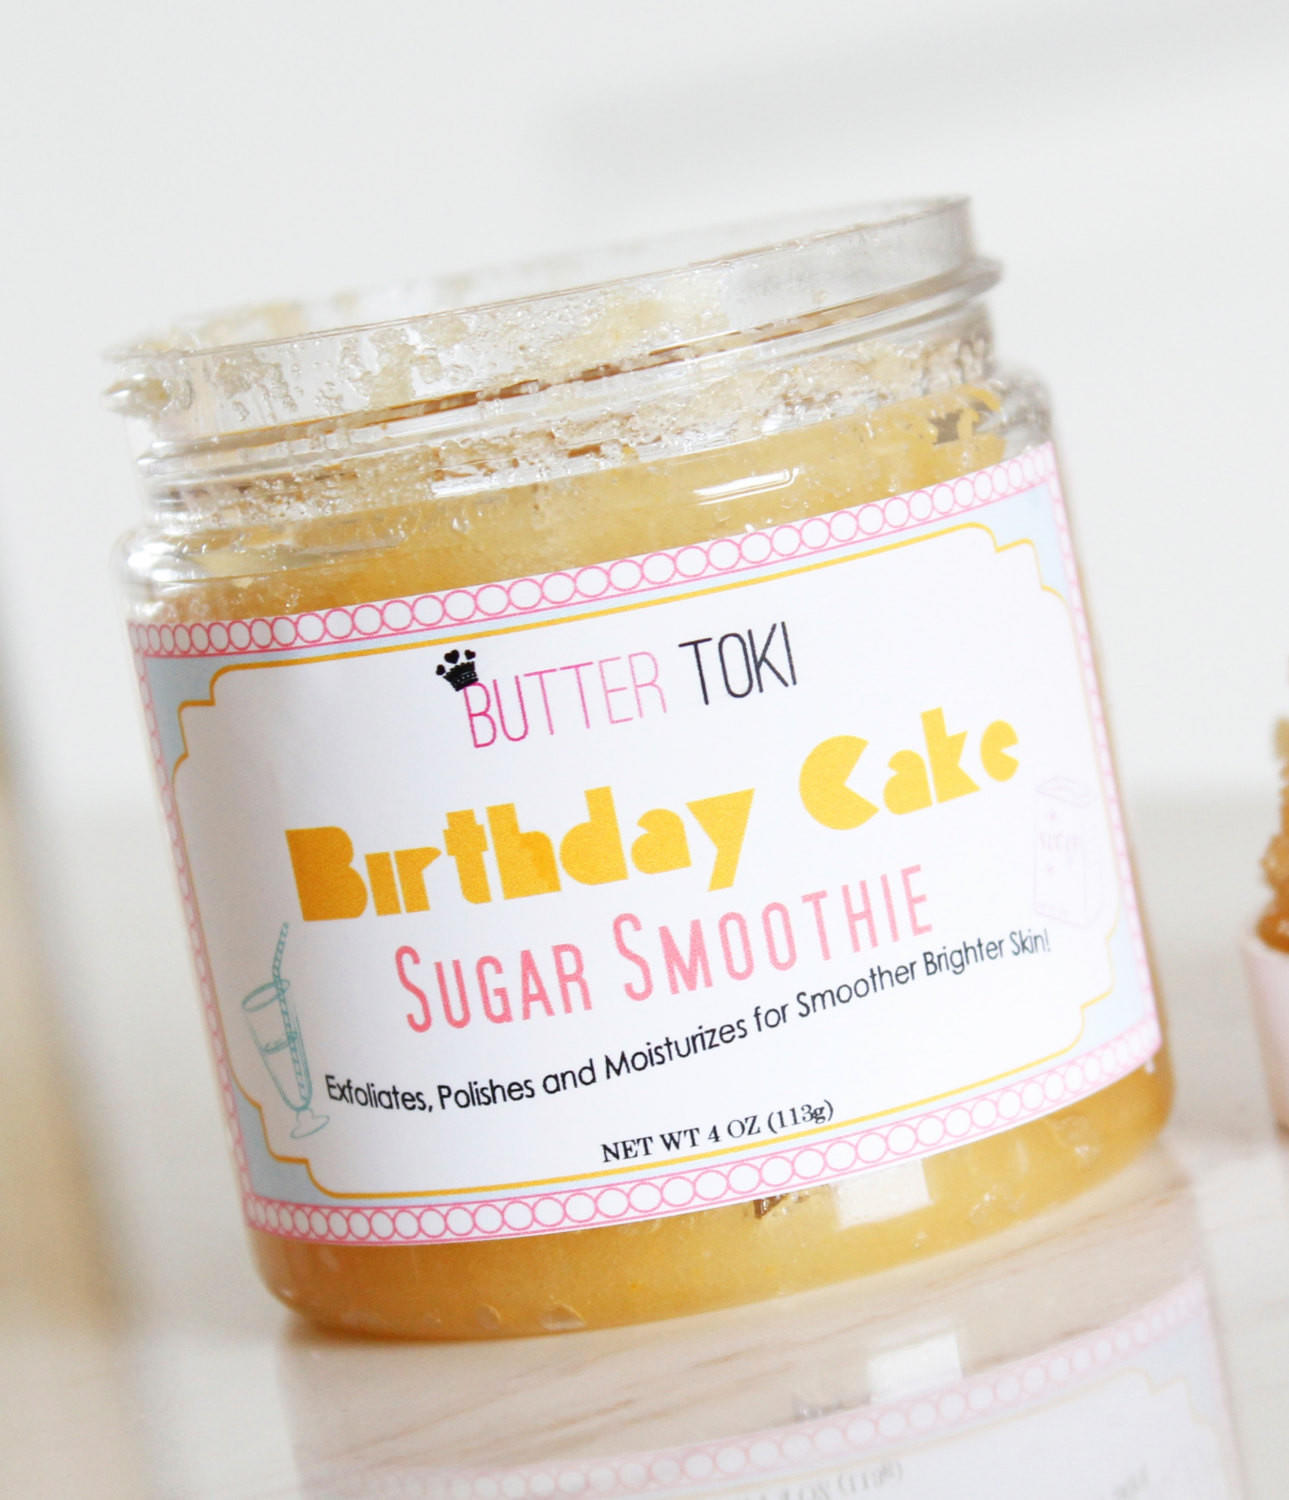 Birthday Cake Scented Sugar Smoothie Body From 214 N 16th